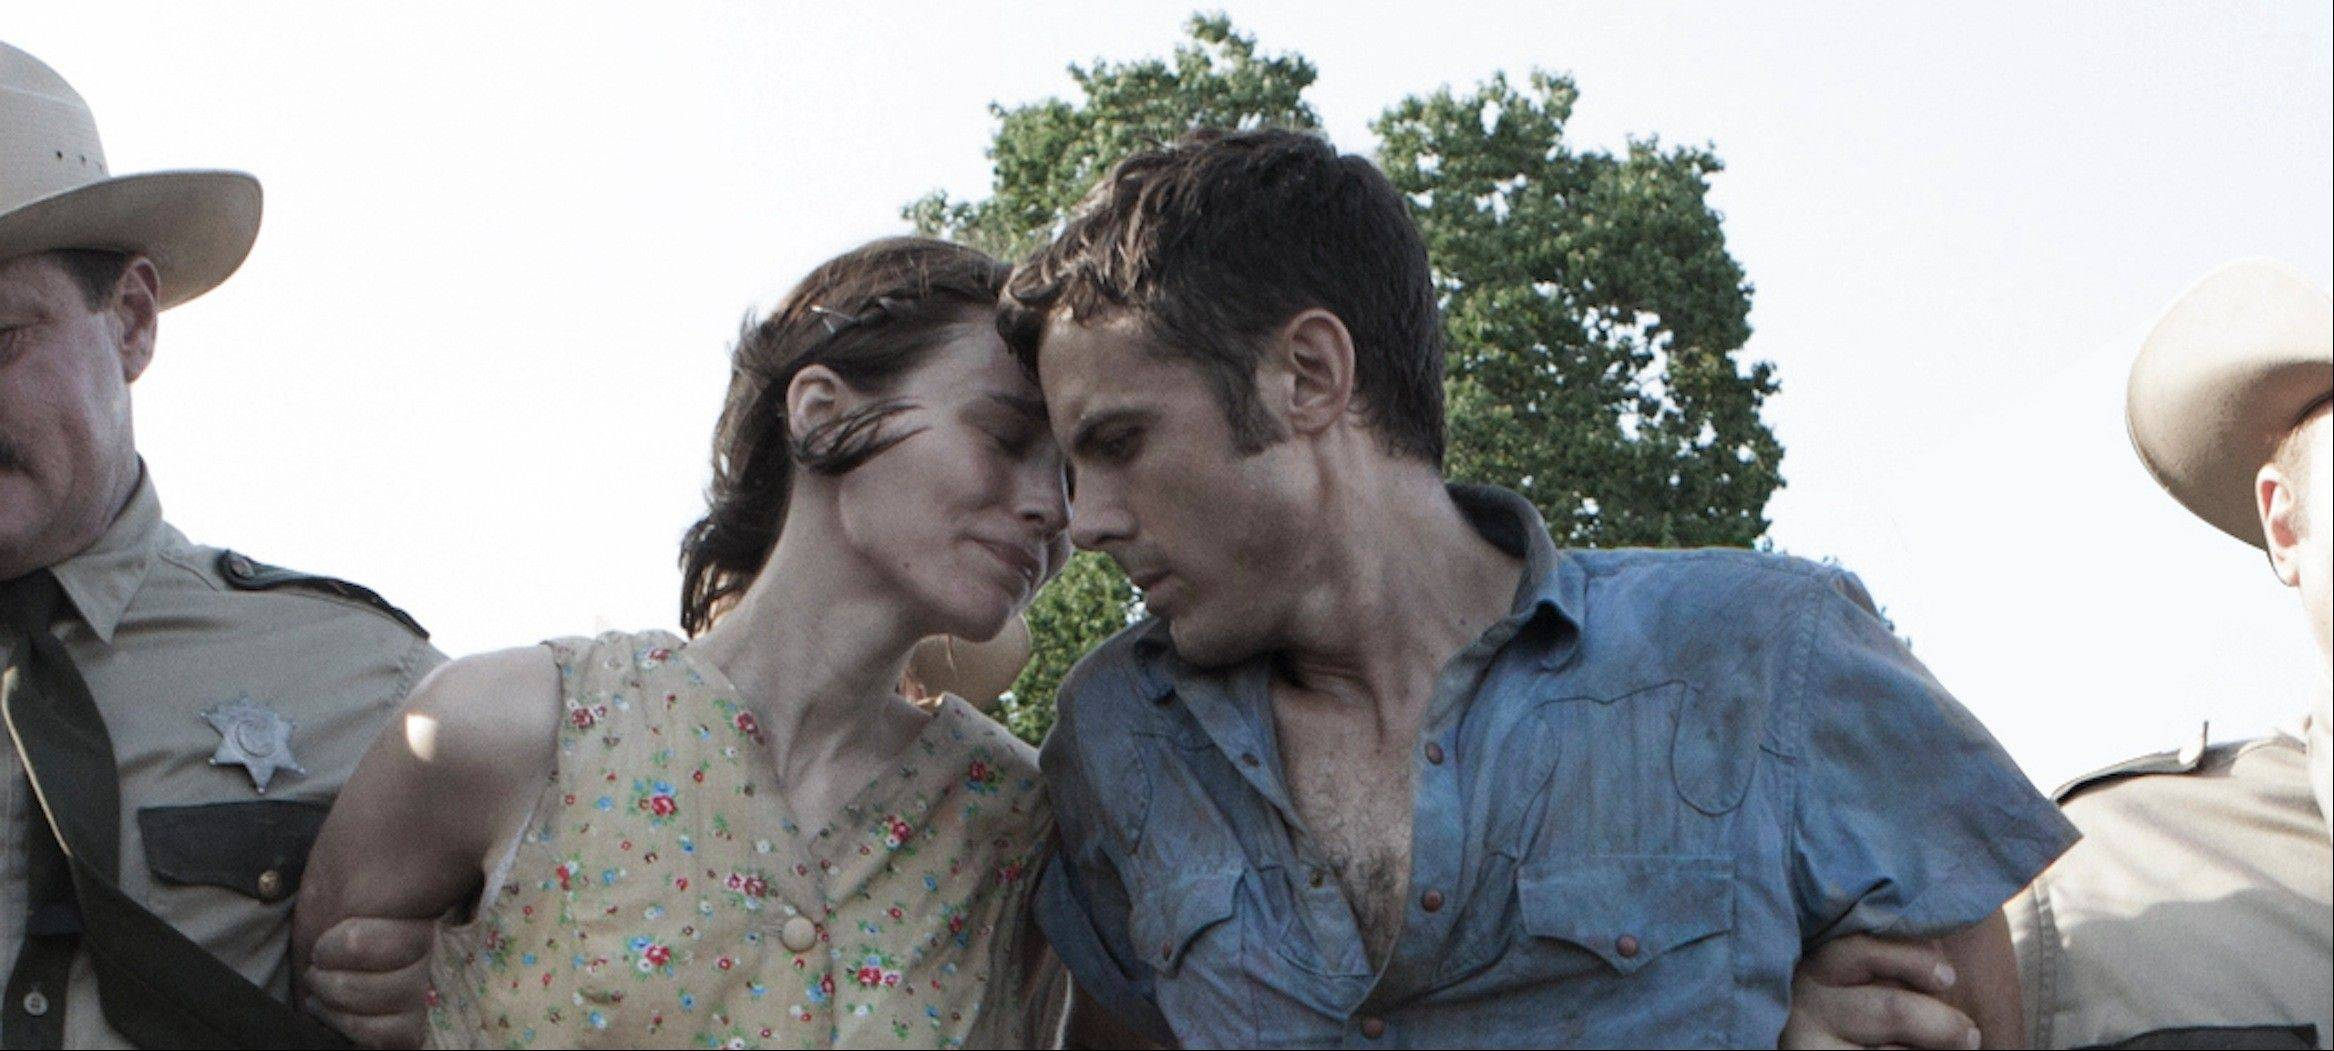 "Rooney Mara and Casey Affleck play criminals on the run in David Lowery's poetic drama ""Ain't Them Bodies Saints."""